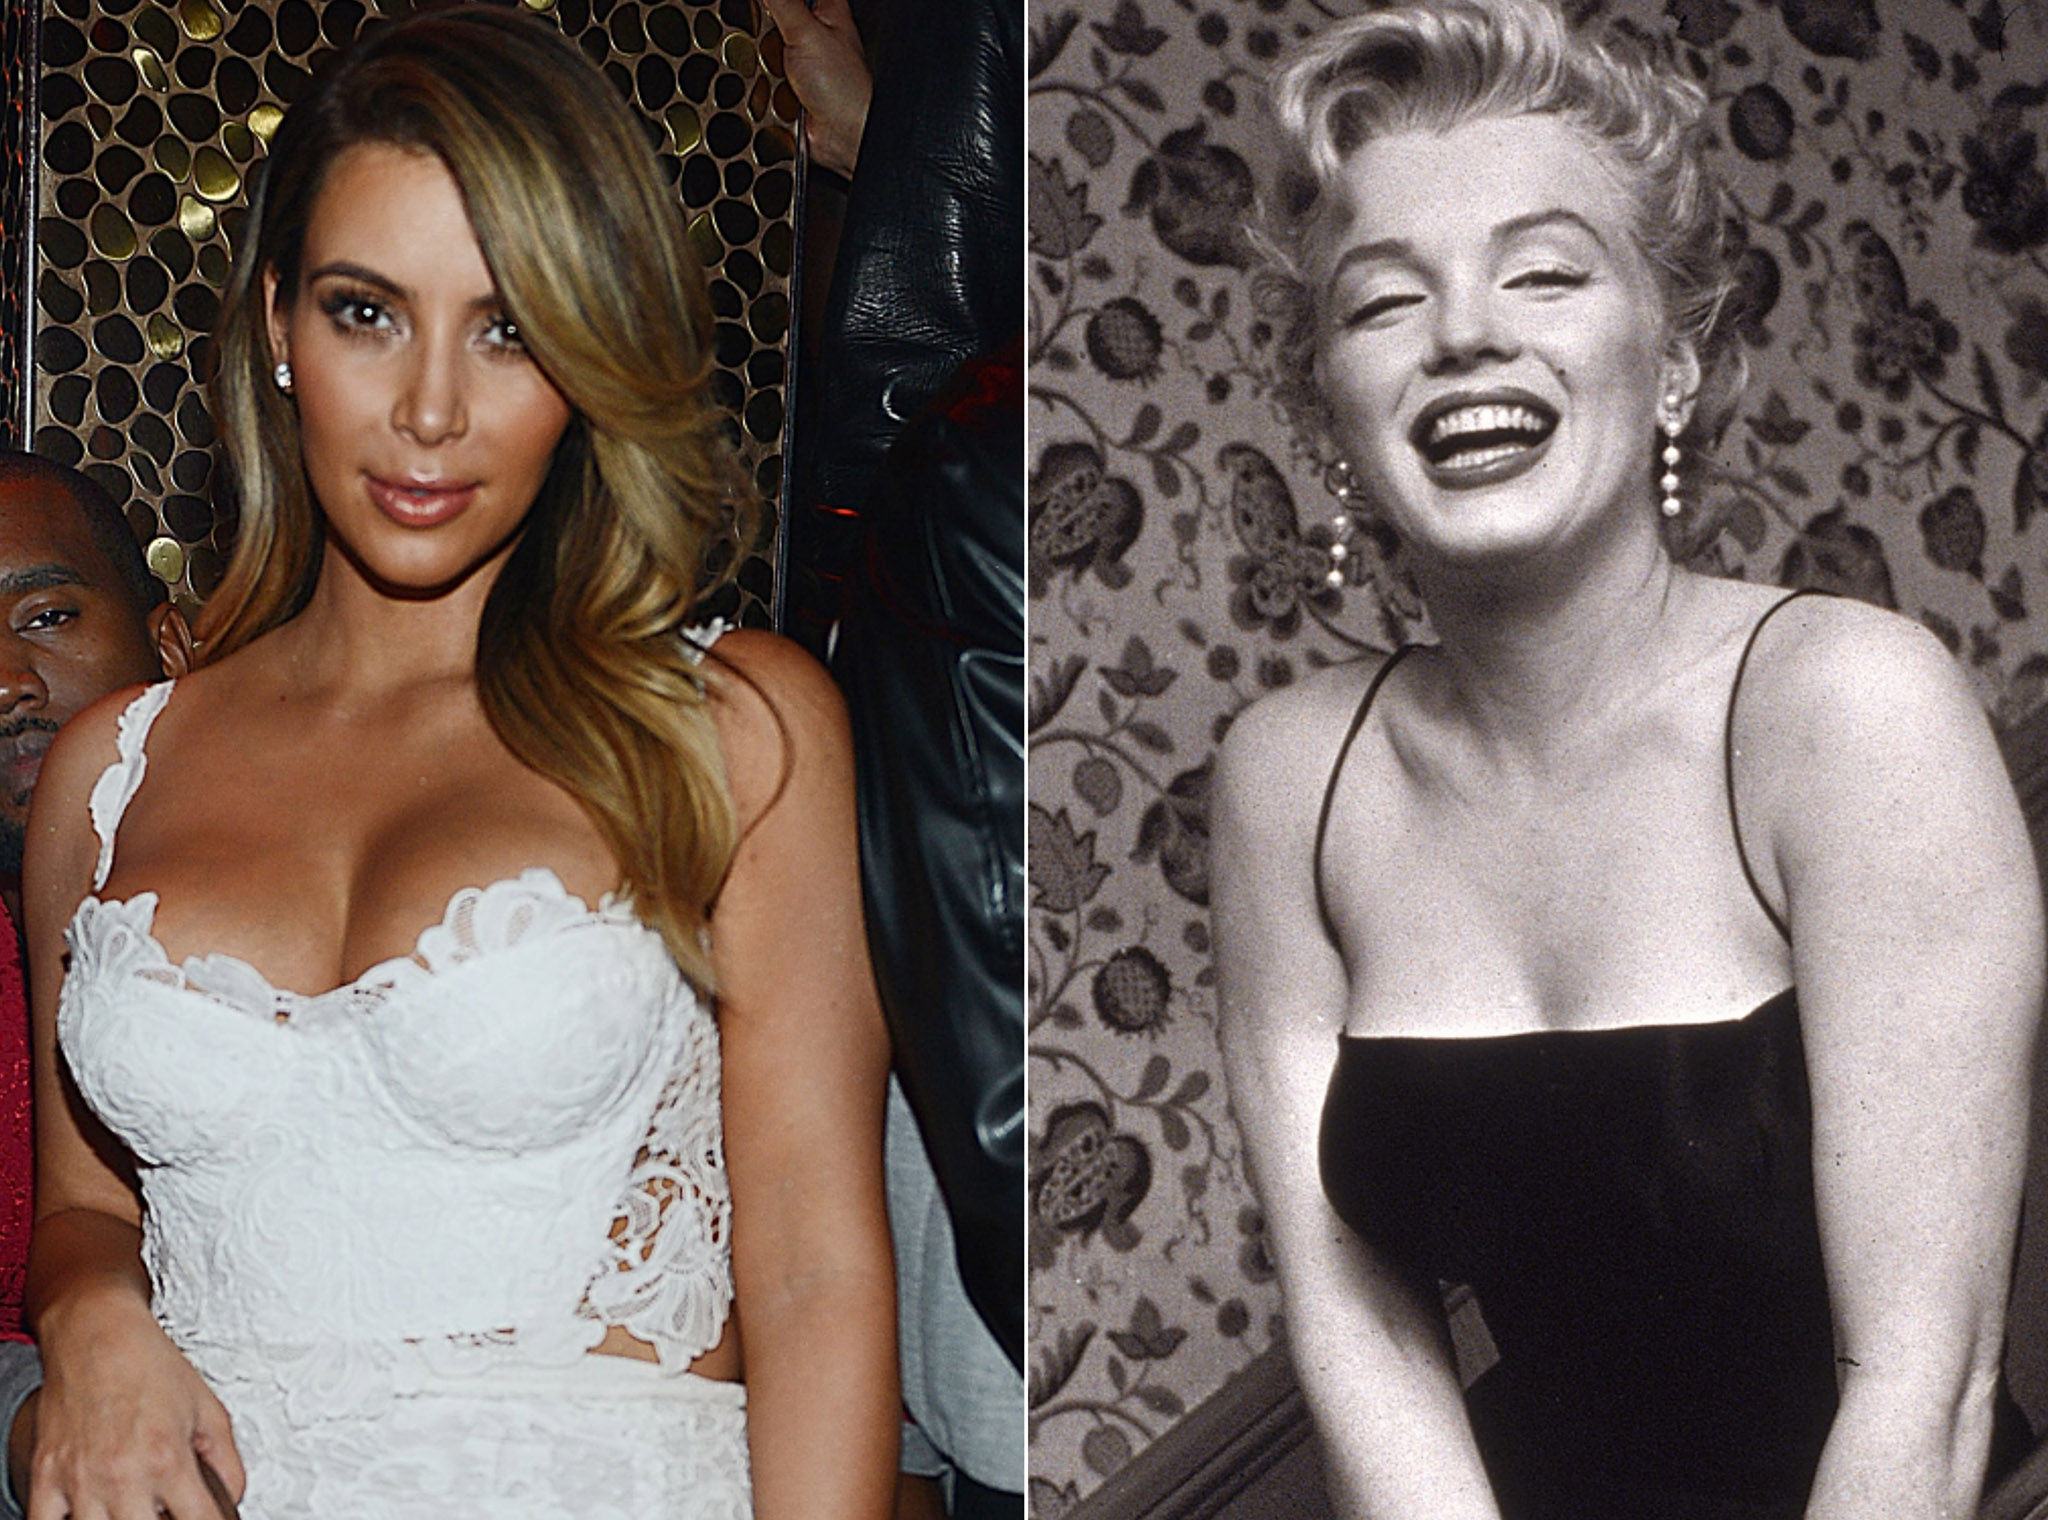 Kim Kardashian and Marilyn Monroe (Getty Images)